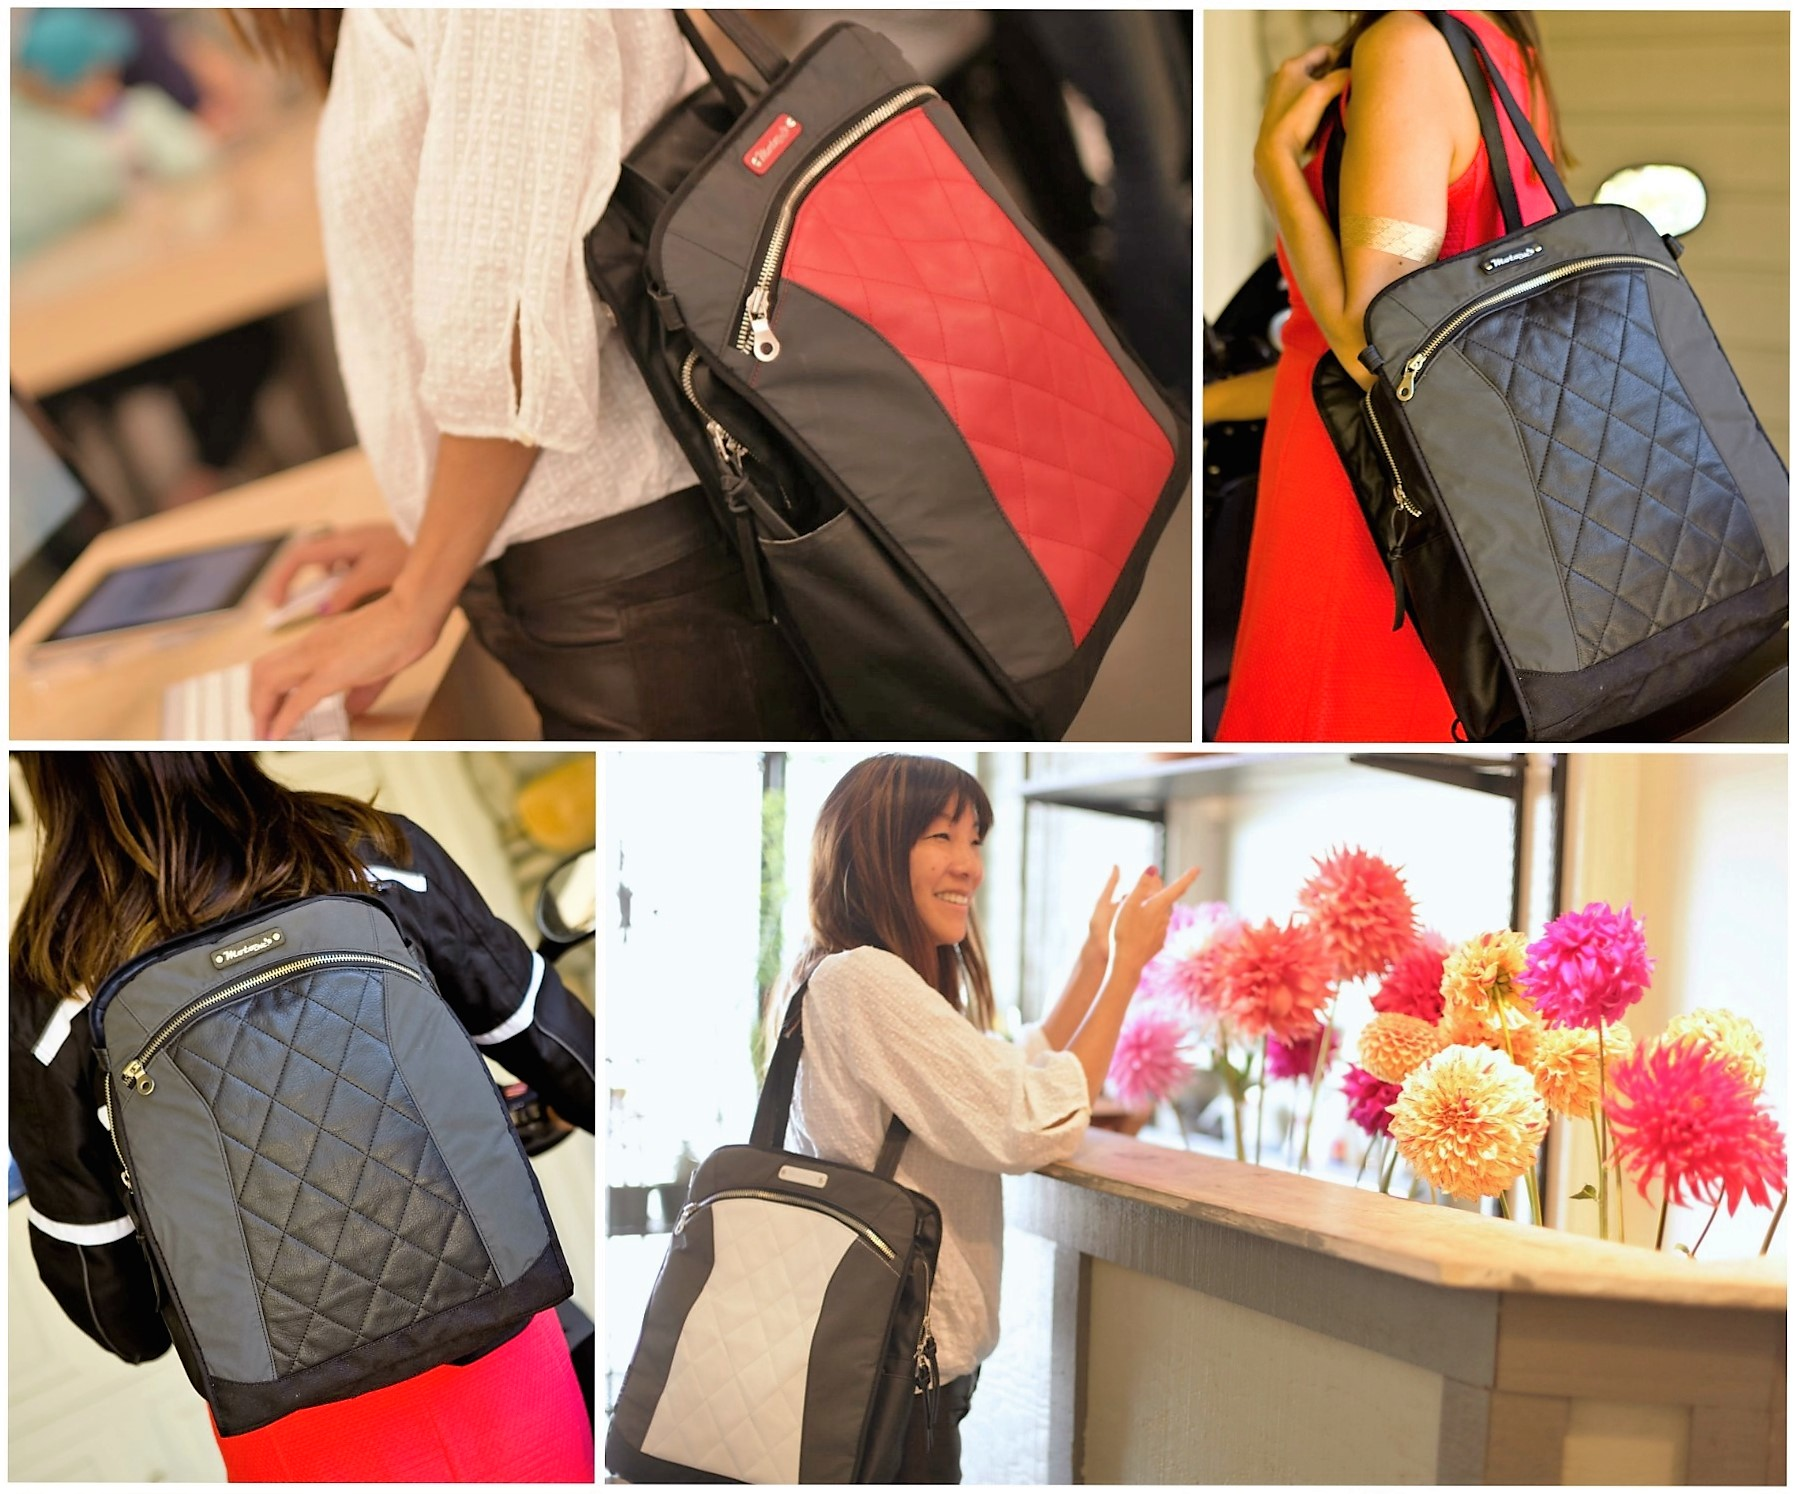 MotoChic® Gear Bags Are the Perfect Holiday Gift For The Woman on the Move!